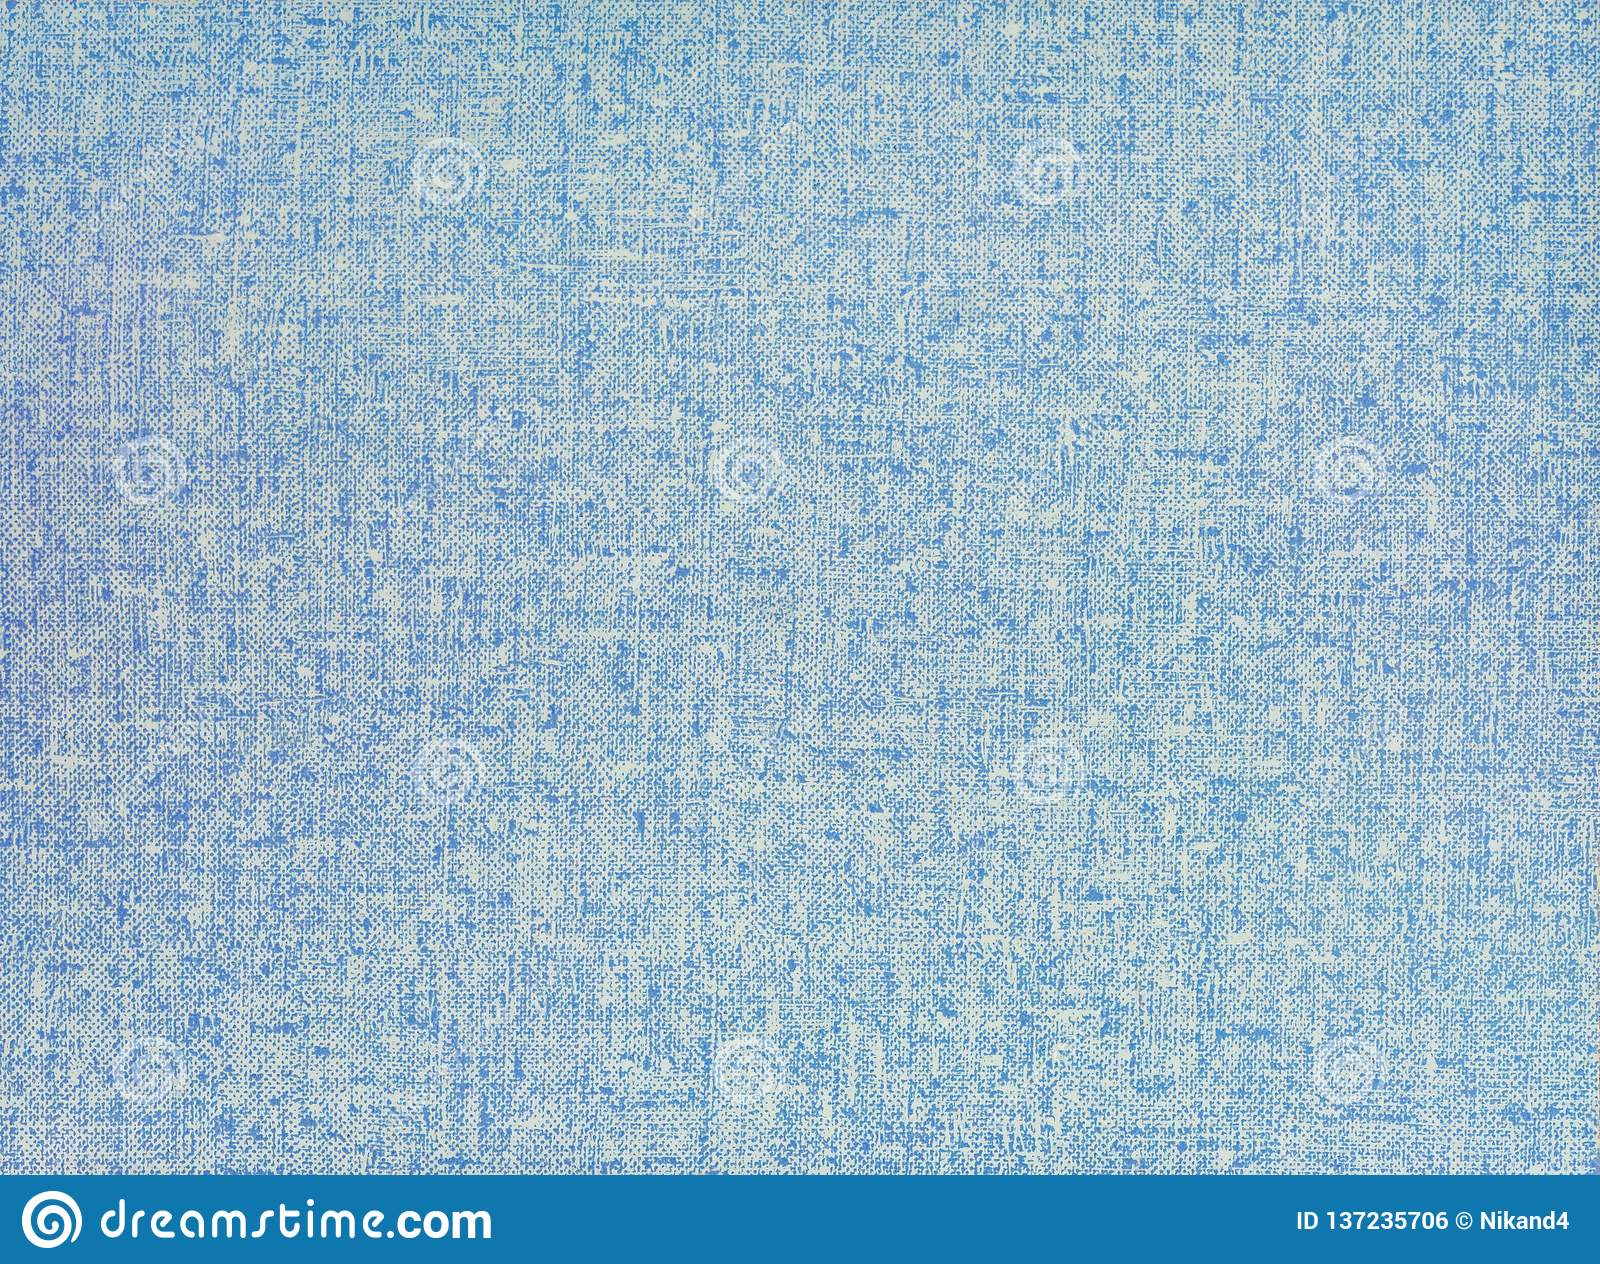 1 109 Vintage Formica Background Photos Free Royalty Stock From Dreamstime